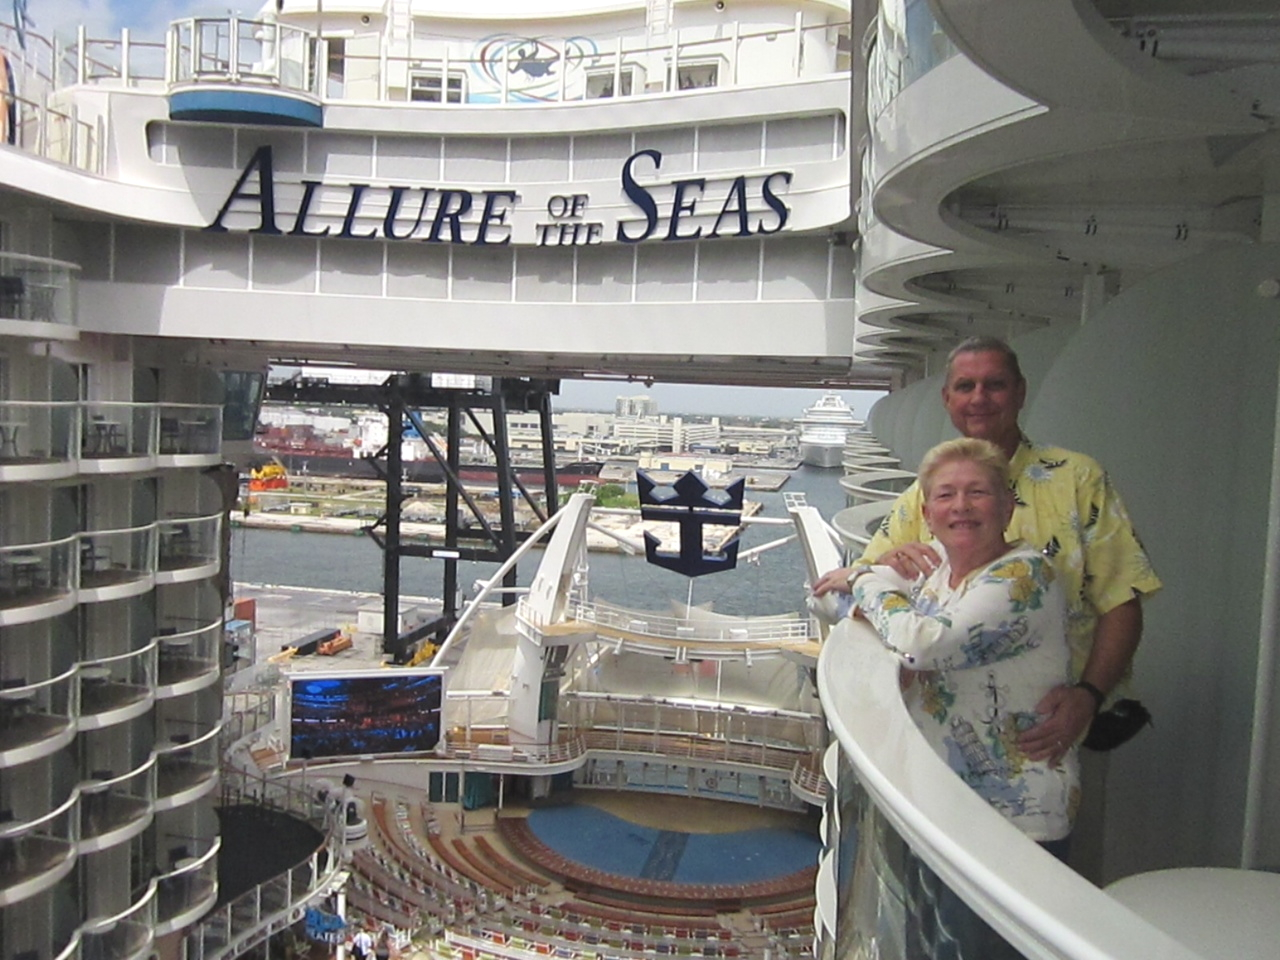 Our Allure Cruise Photo